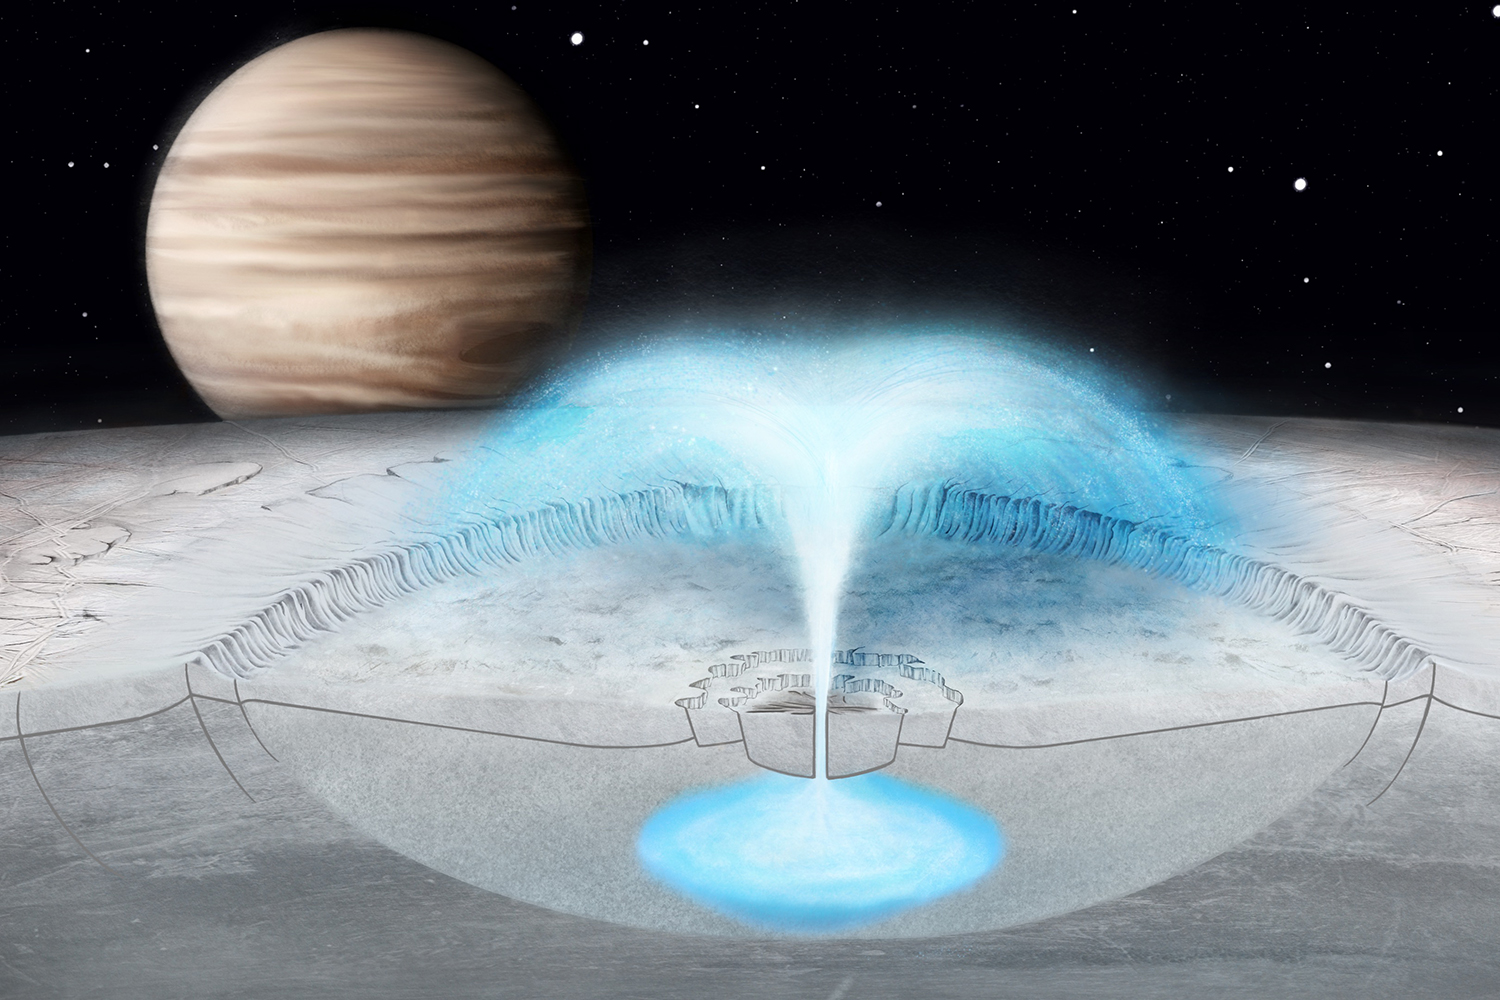 Artist's conception of a plume erupting on Jupiter's icy moon Europa